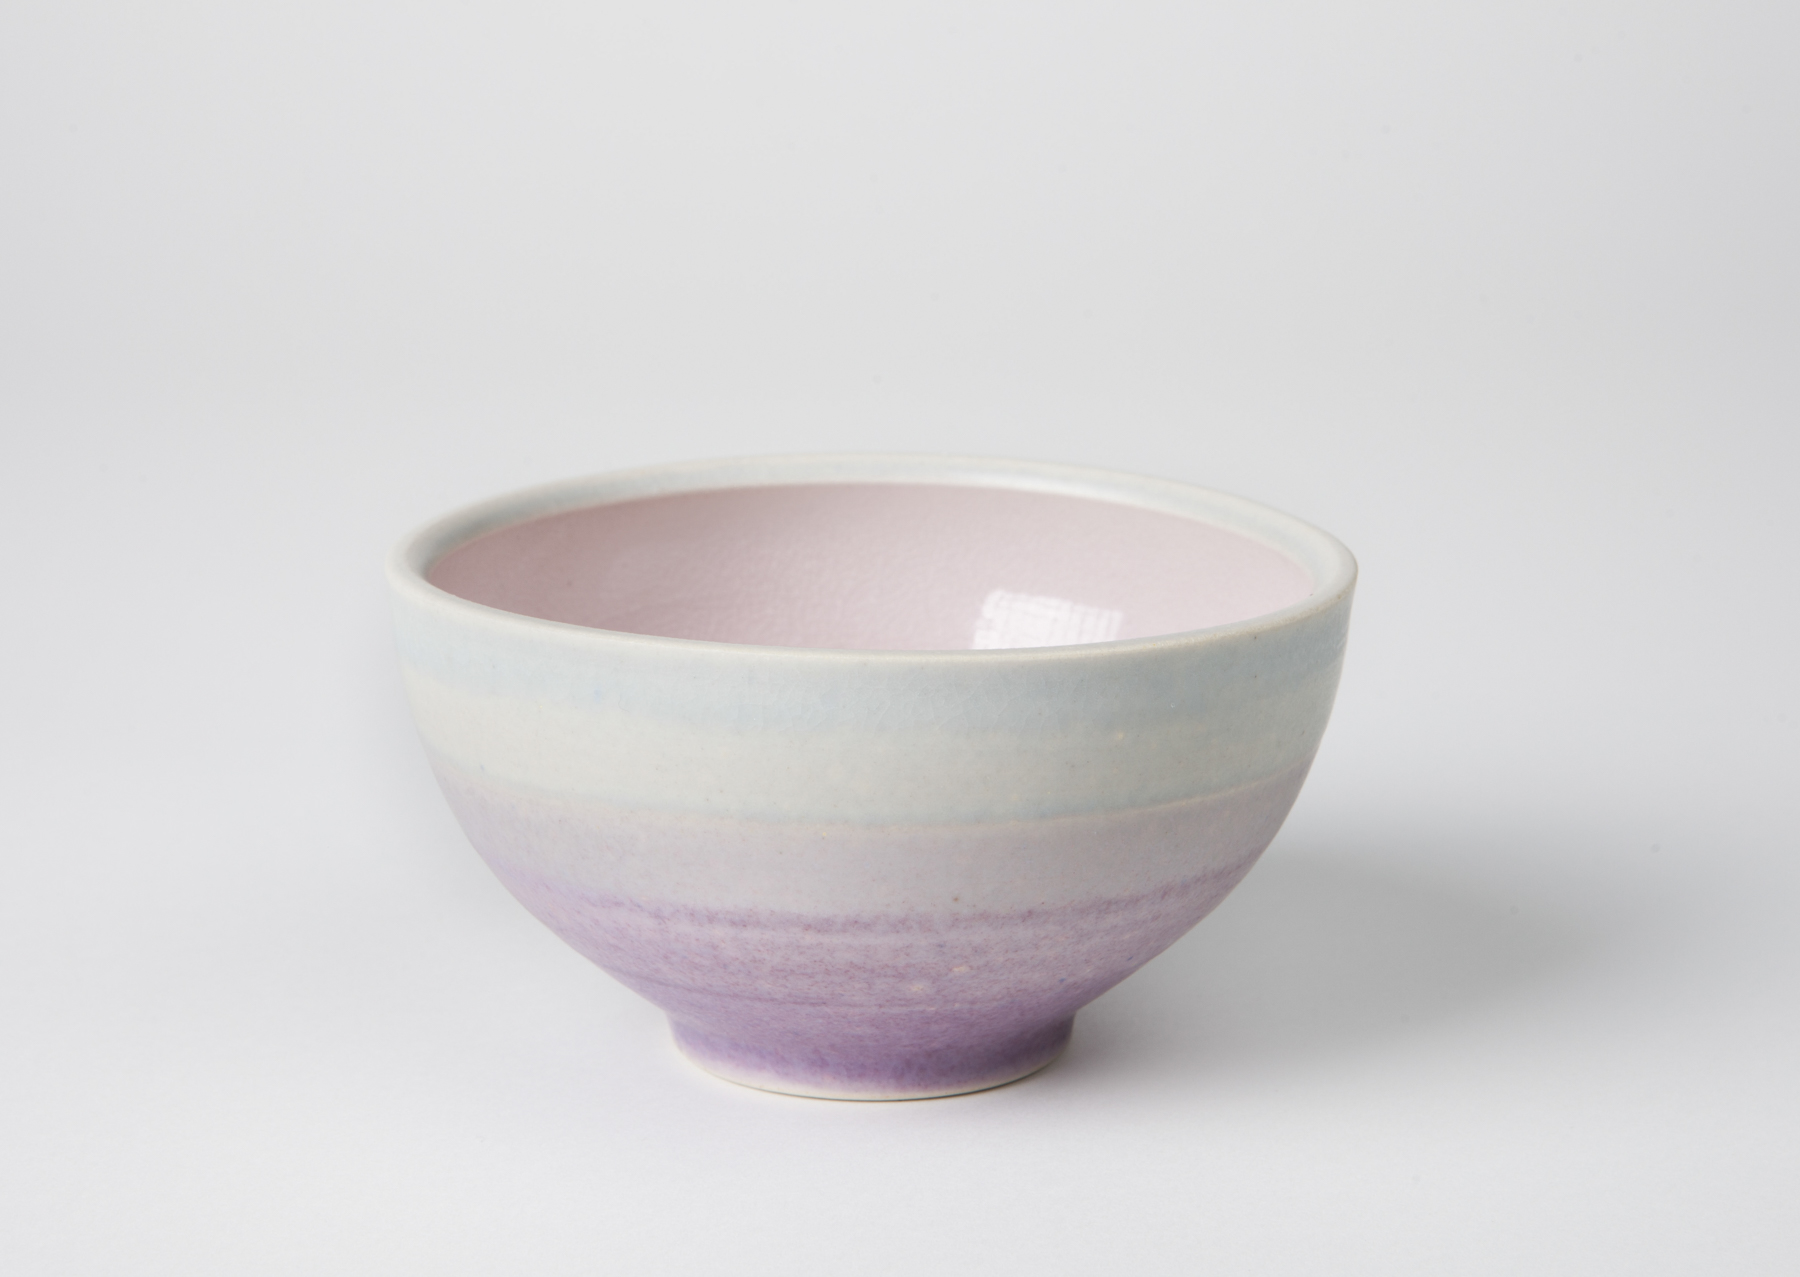 sister bowl, cone 9 oxidation porcelain